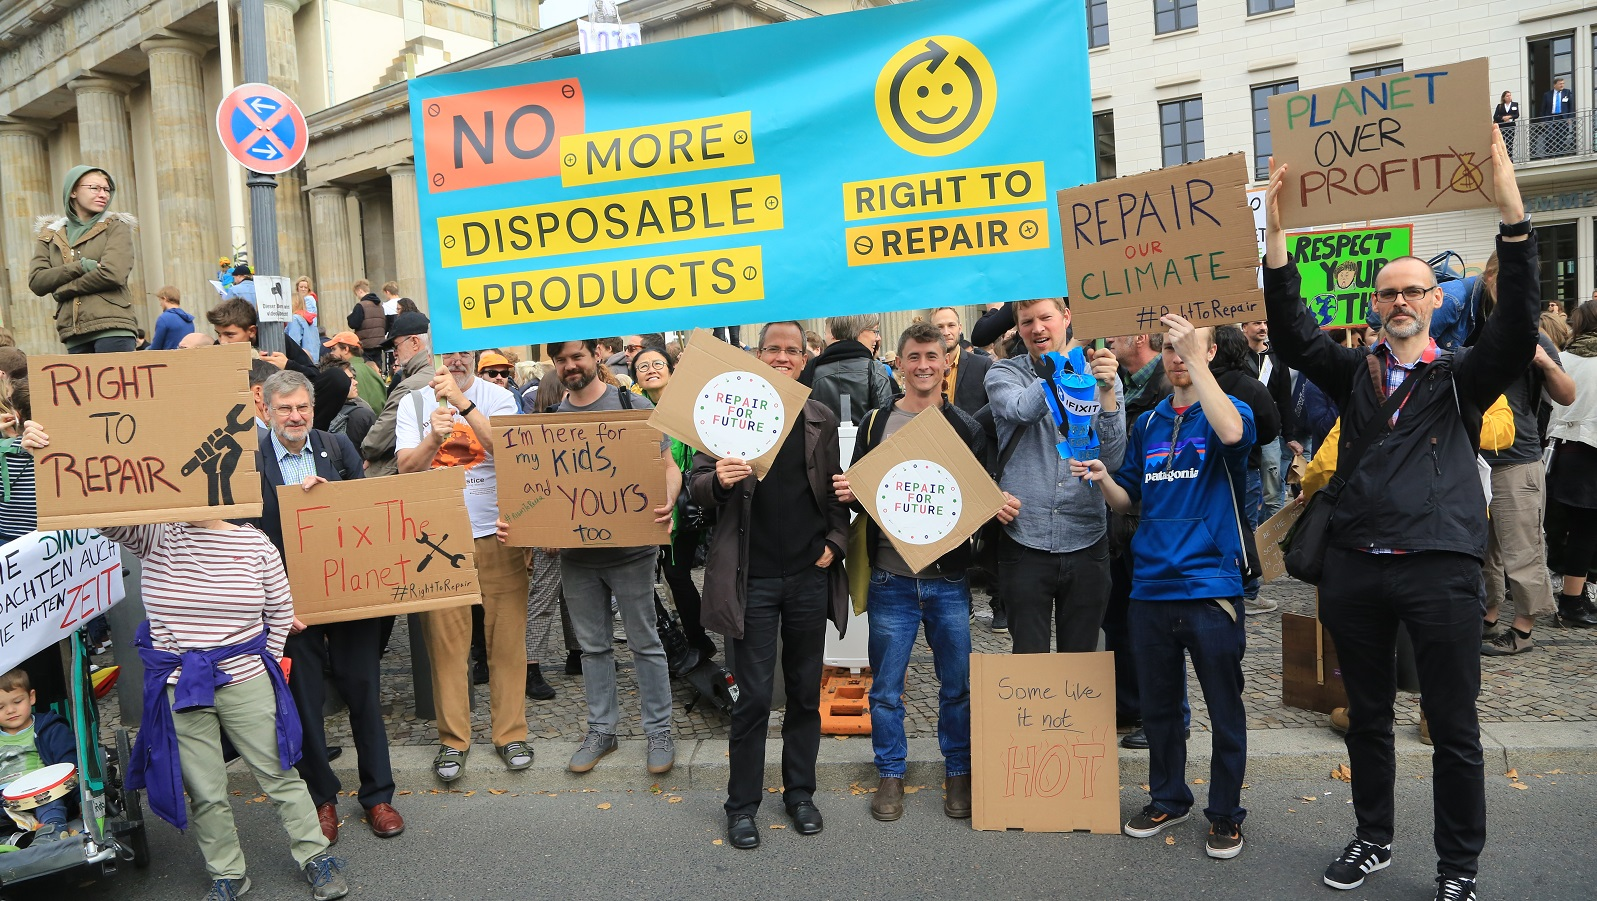 Right to Repair campaign kickoff in Berlin